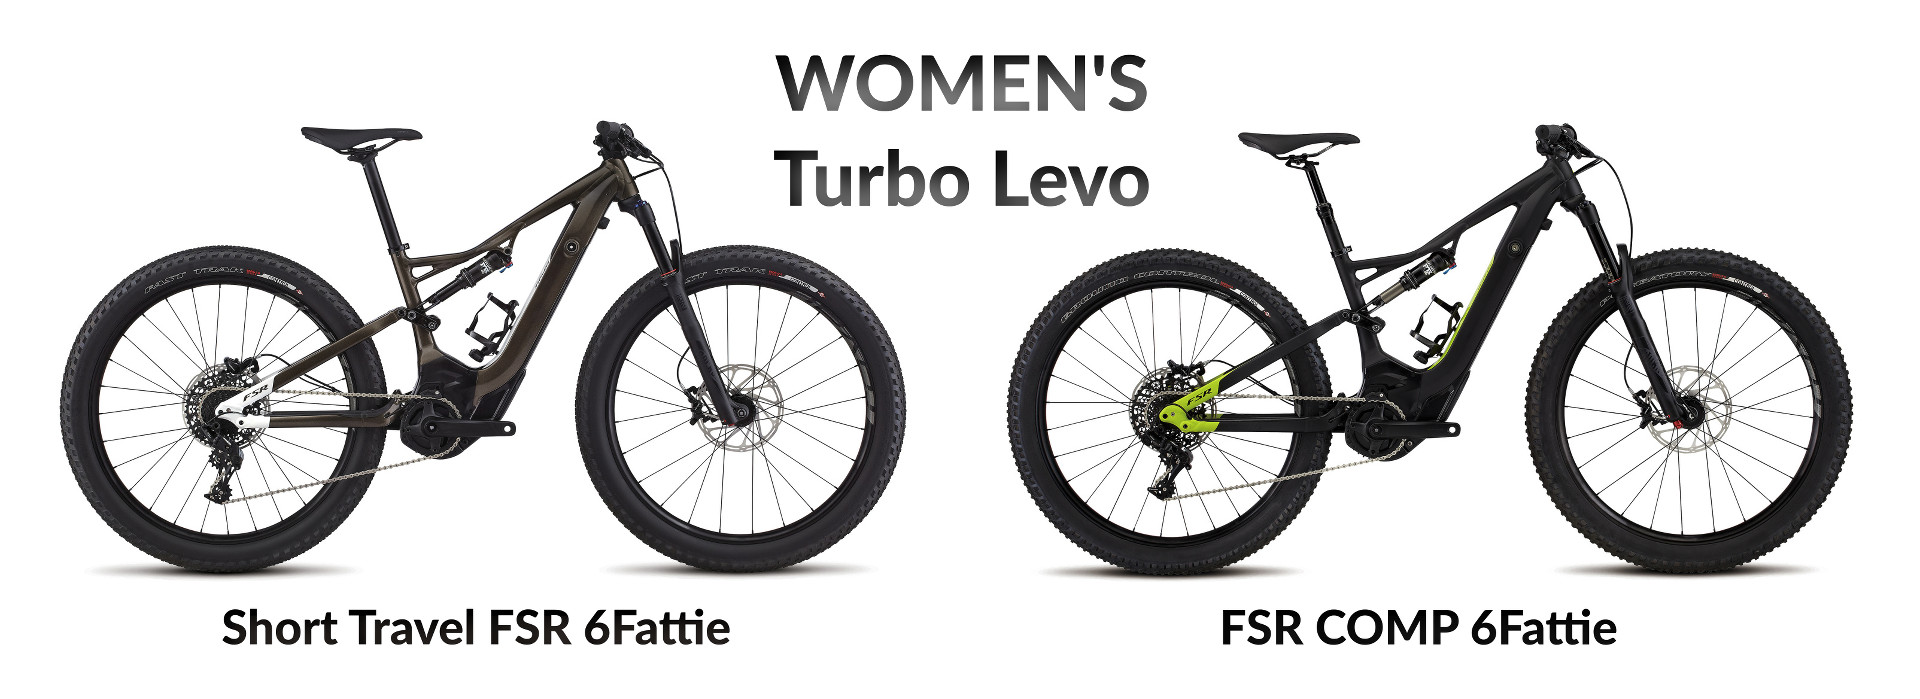 2017 Turbo Levo Women Modelle